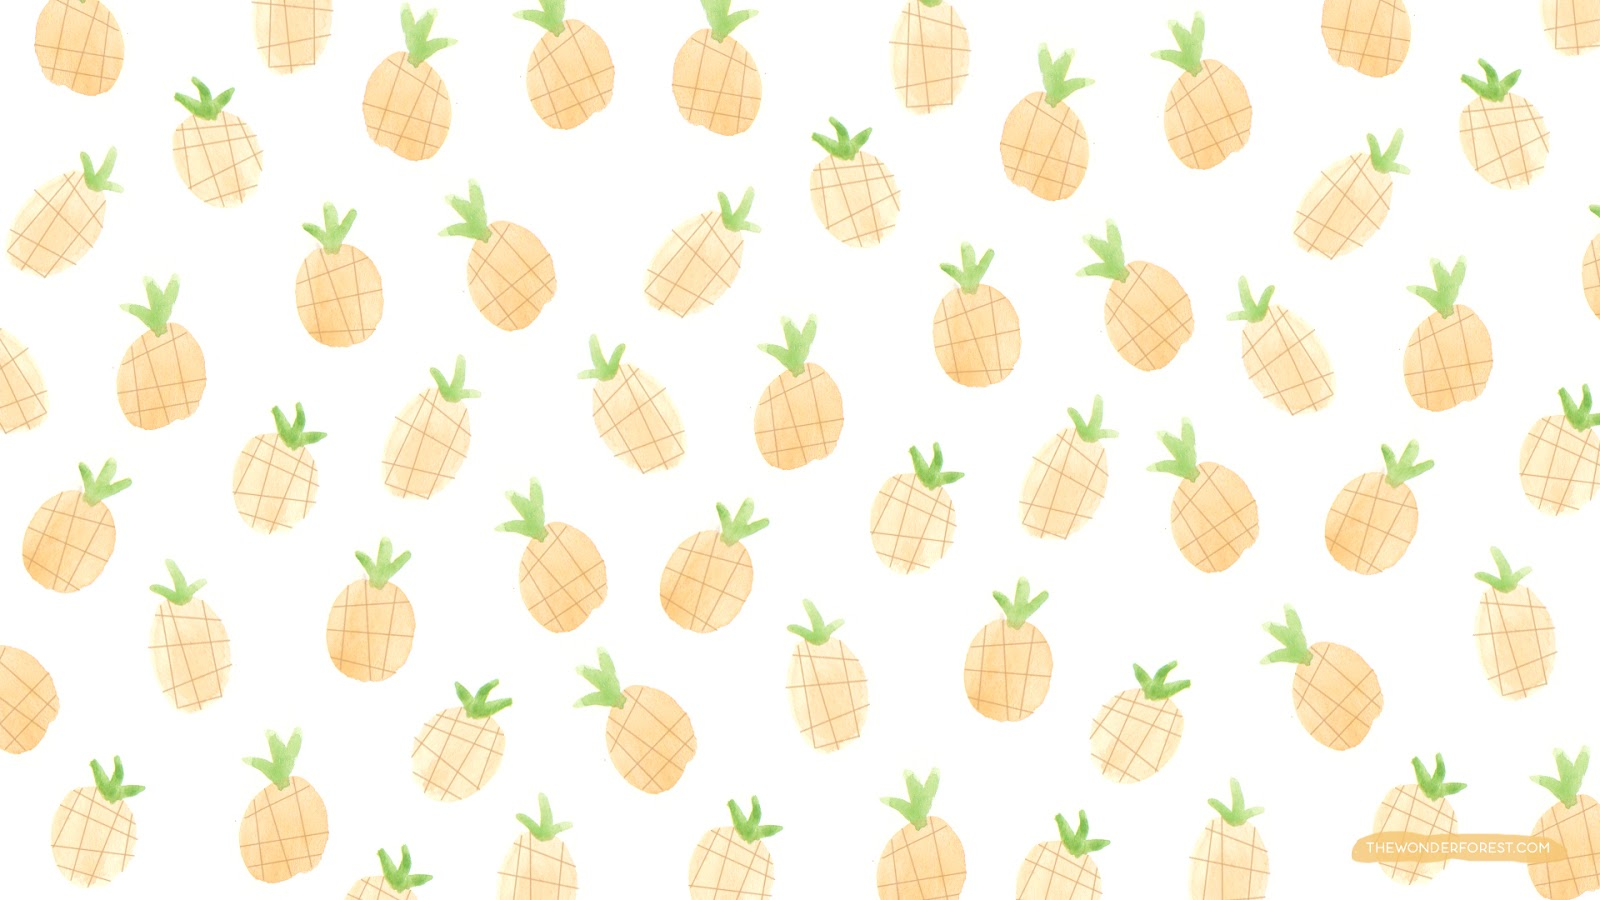 thewonderforest.com  Everything You Need To Know About Decorating With Pineapples